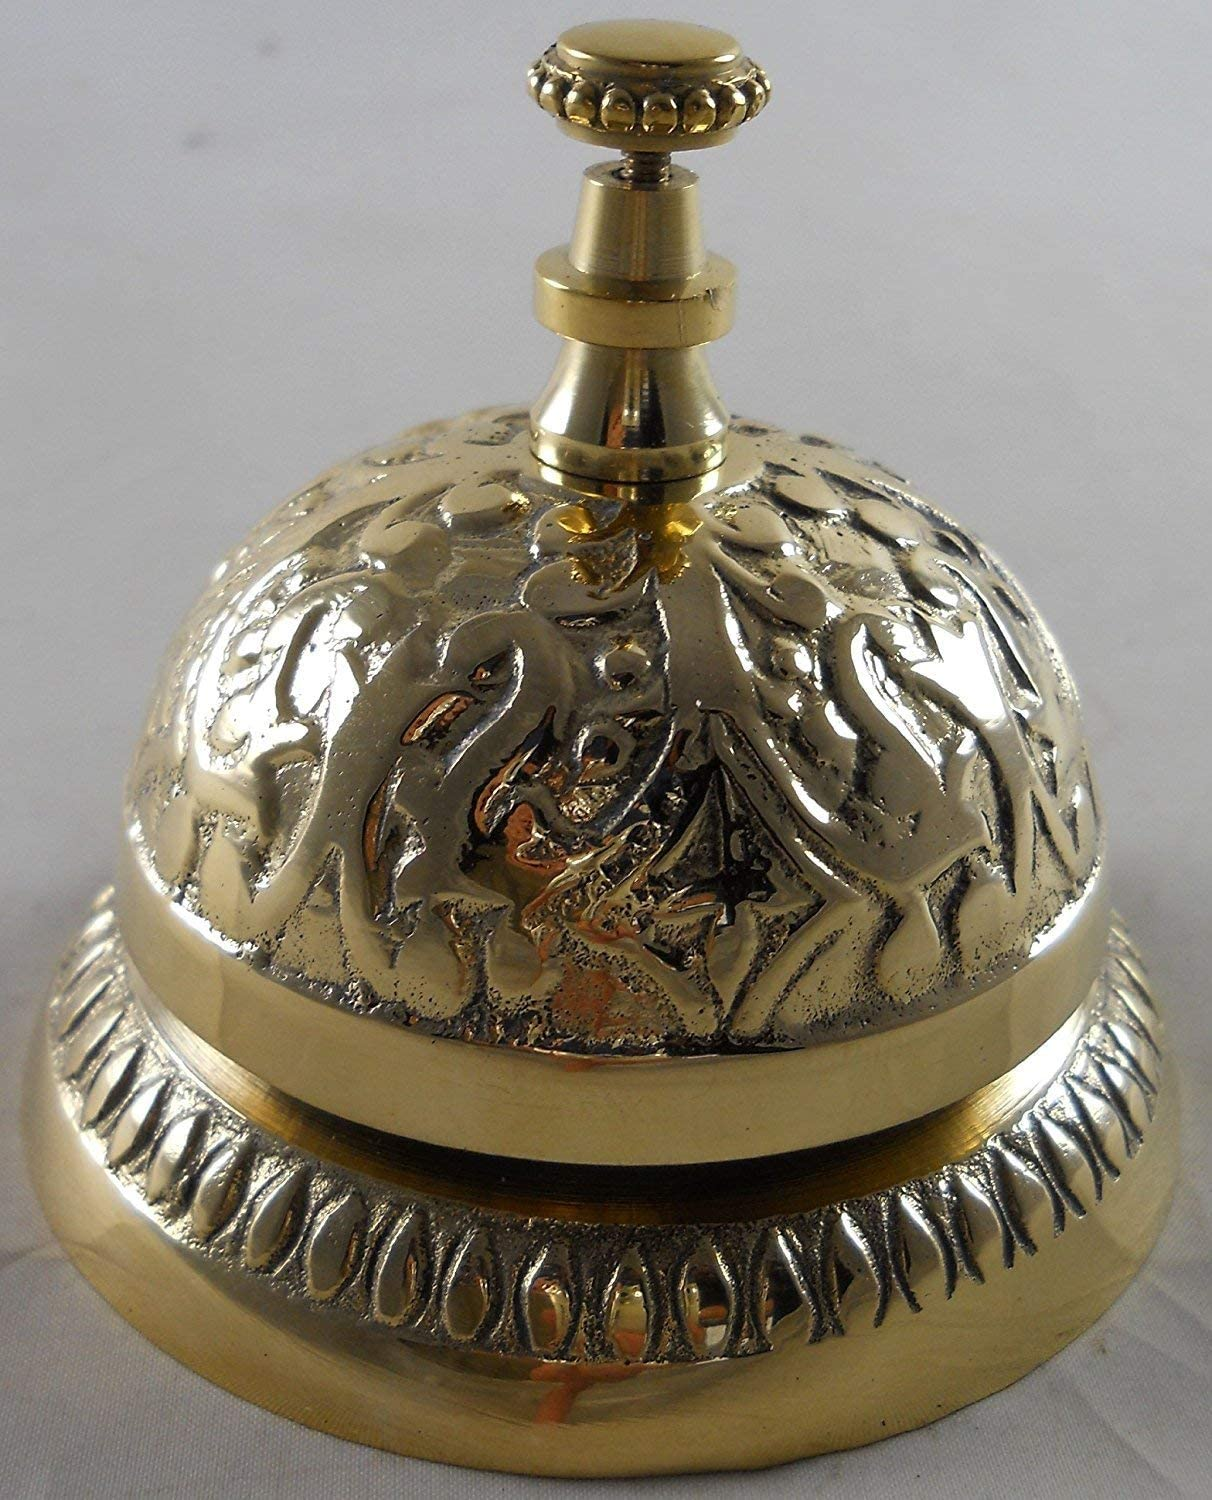 MGSIO Solid Brass Victorian Style Service Desk Bell